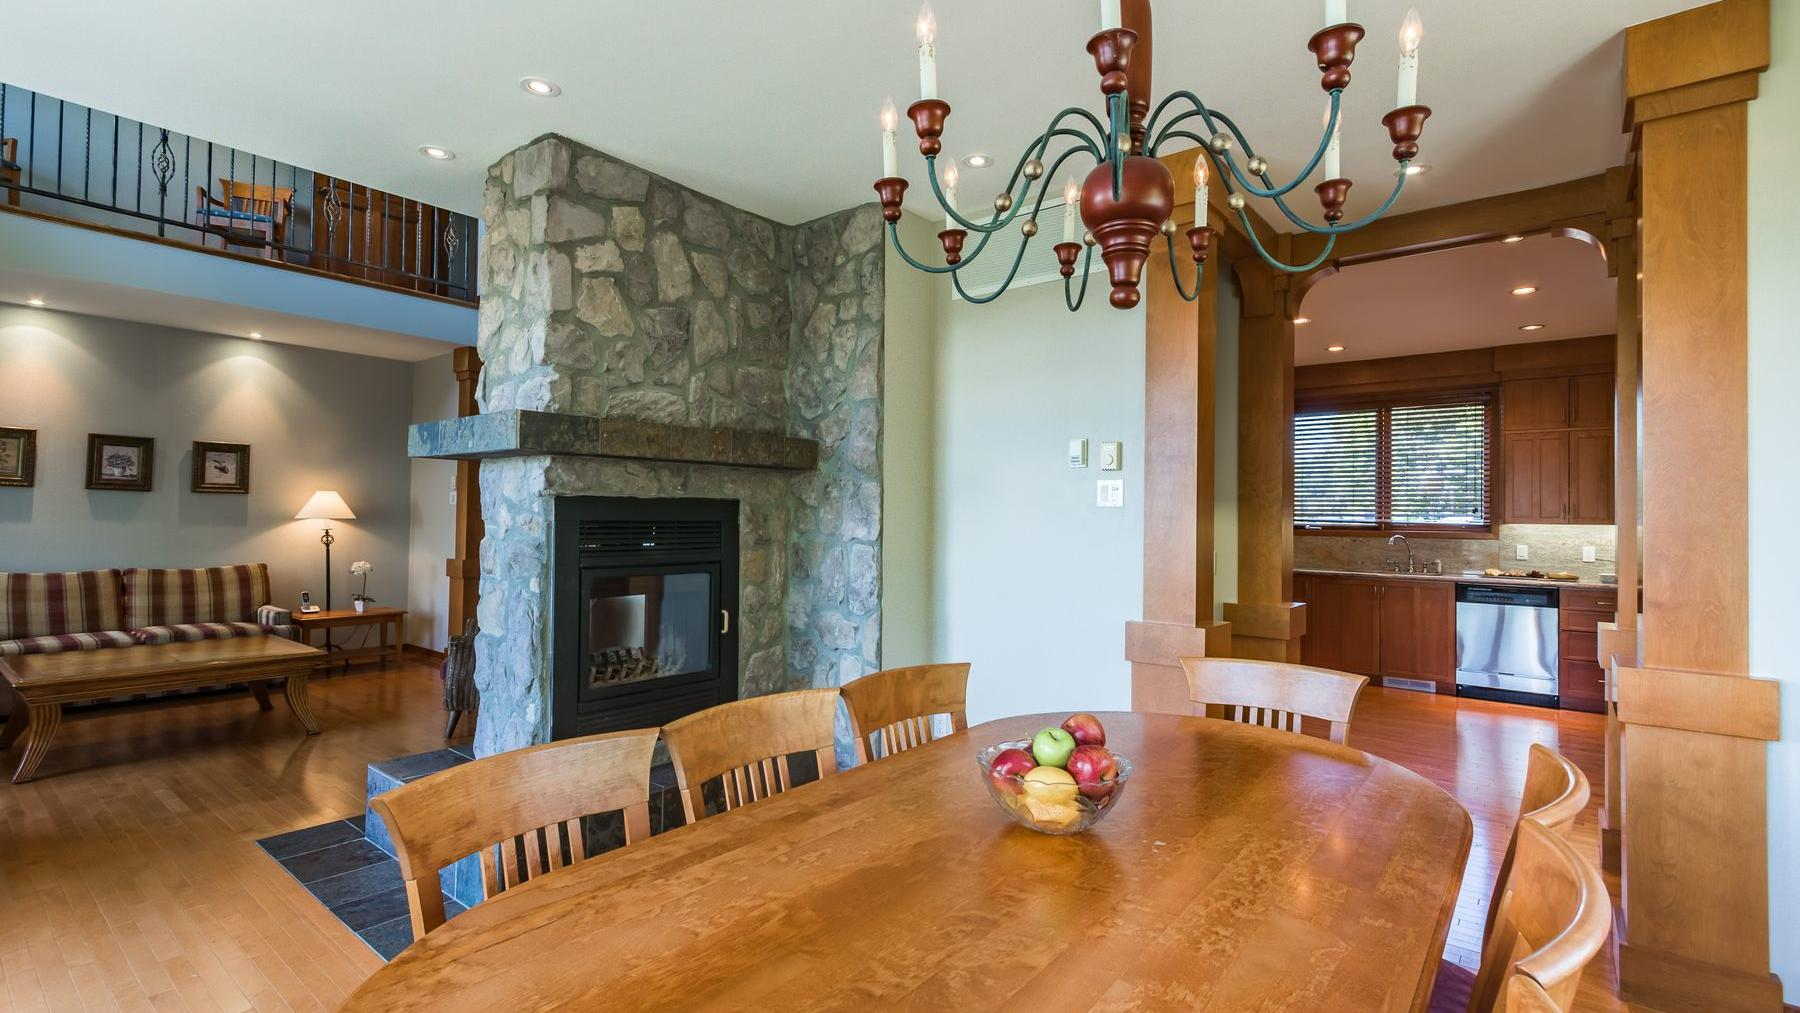 Large dining table and view of kitchen in presidential chalet